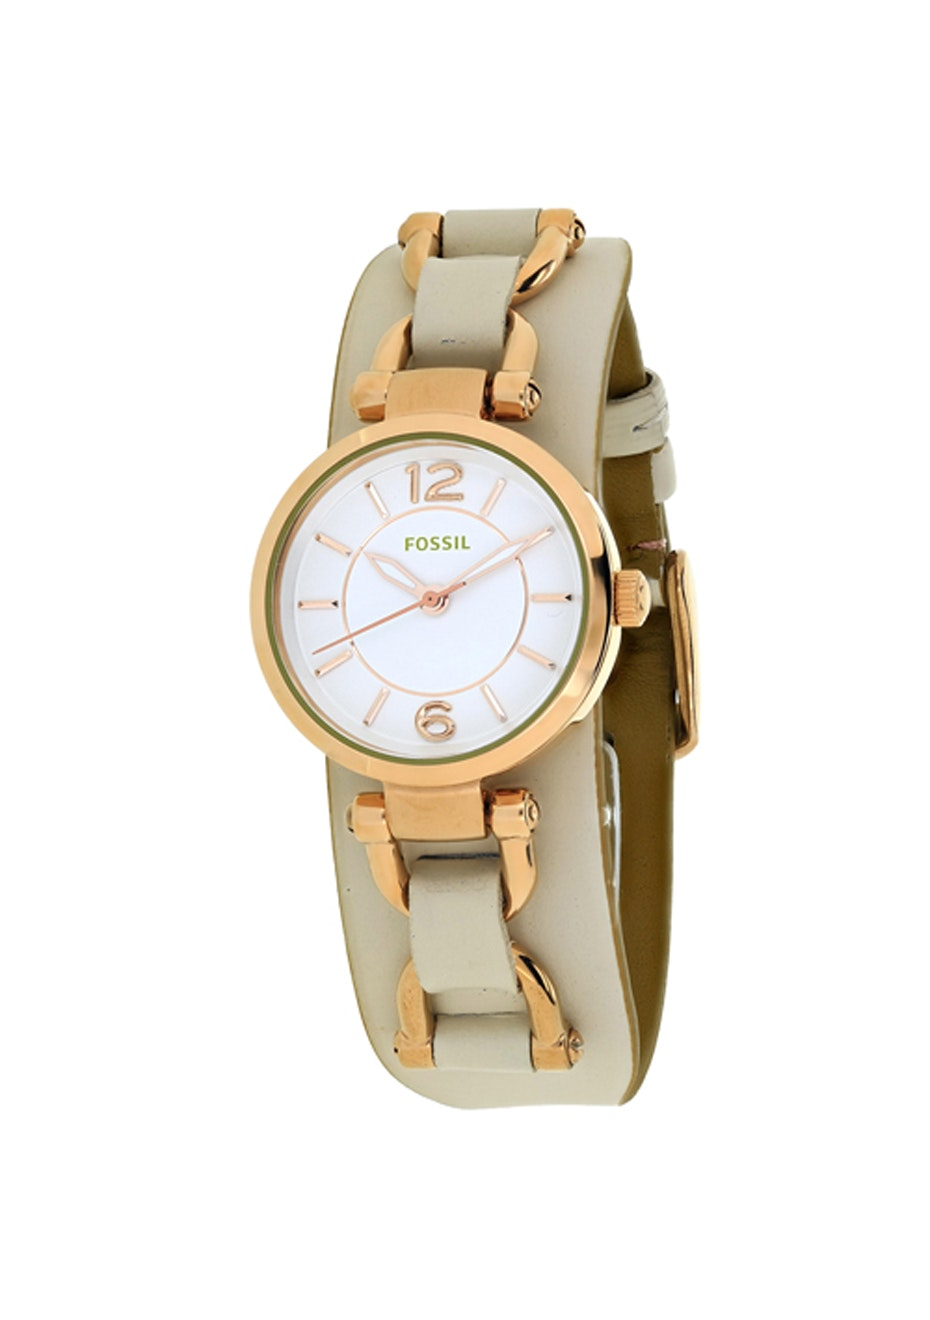 Fossil Women's Georgia Artisan - White/Off-white